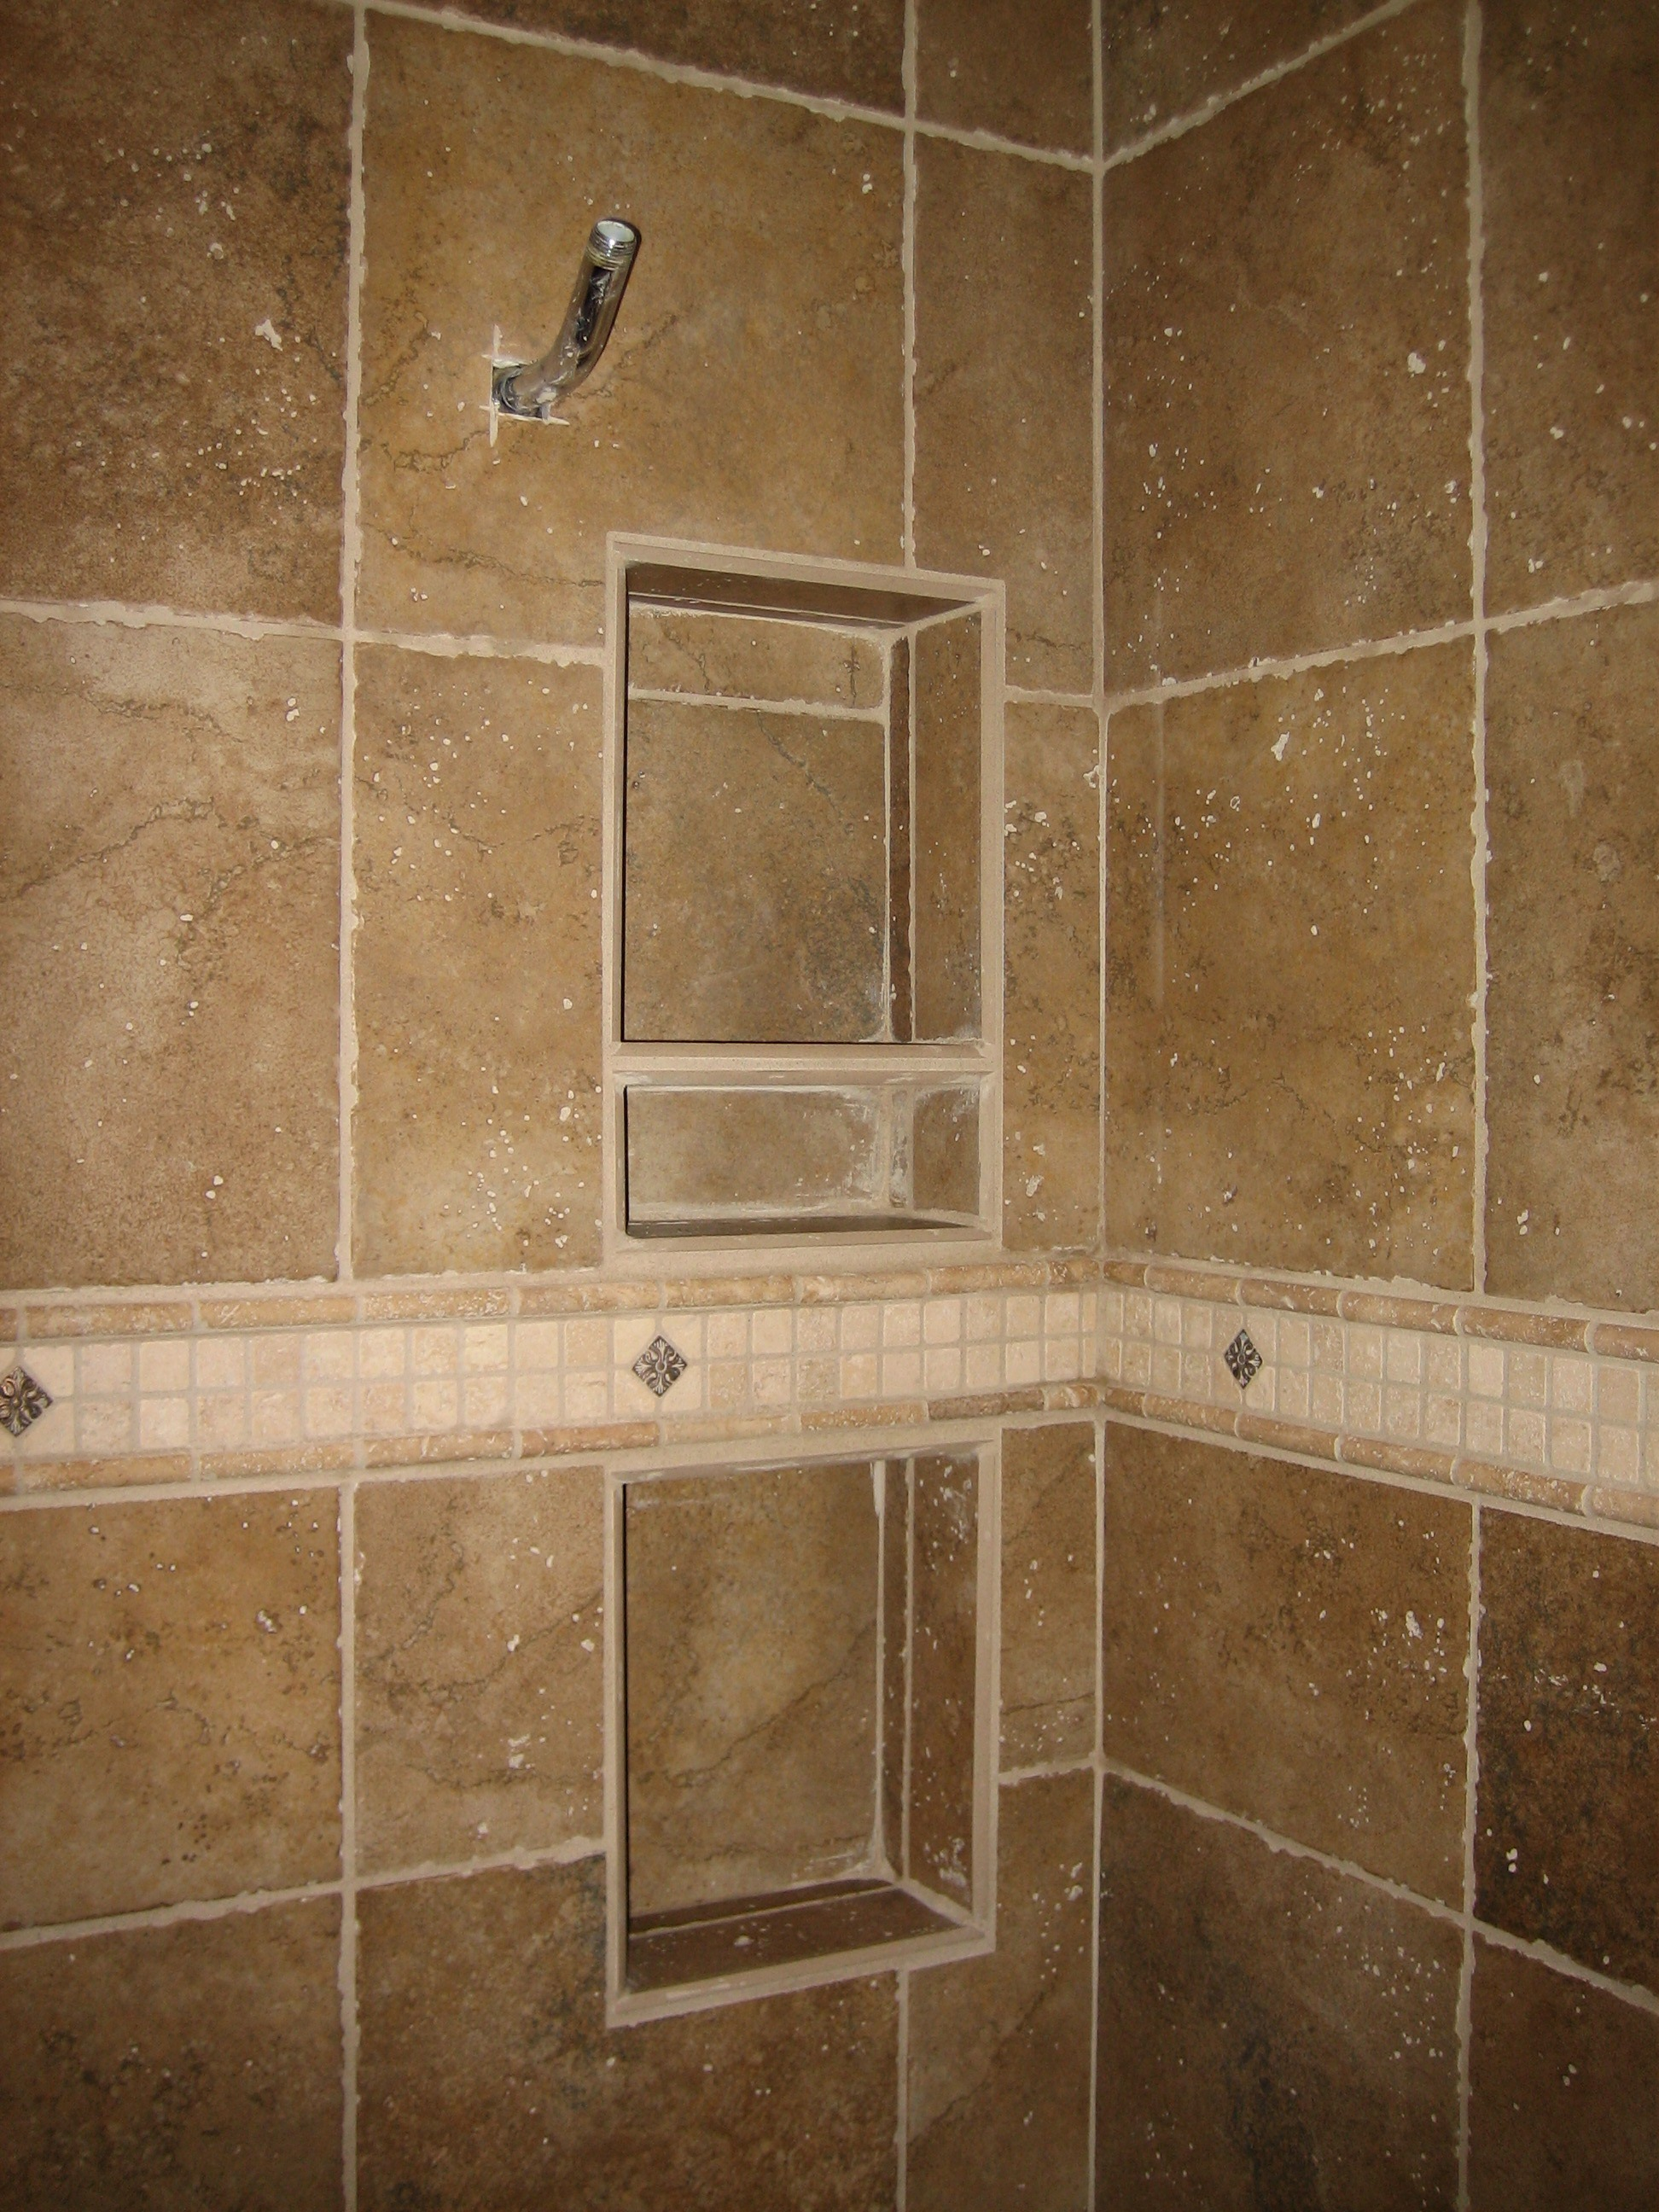 Einbaudusche Do It Yourself Recessed Tile Shelves For Showers Bathroom